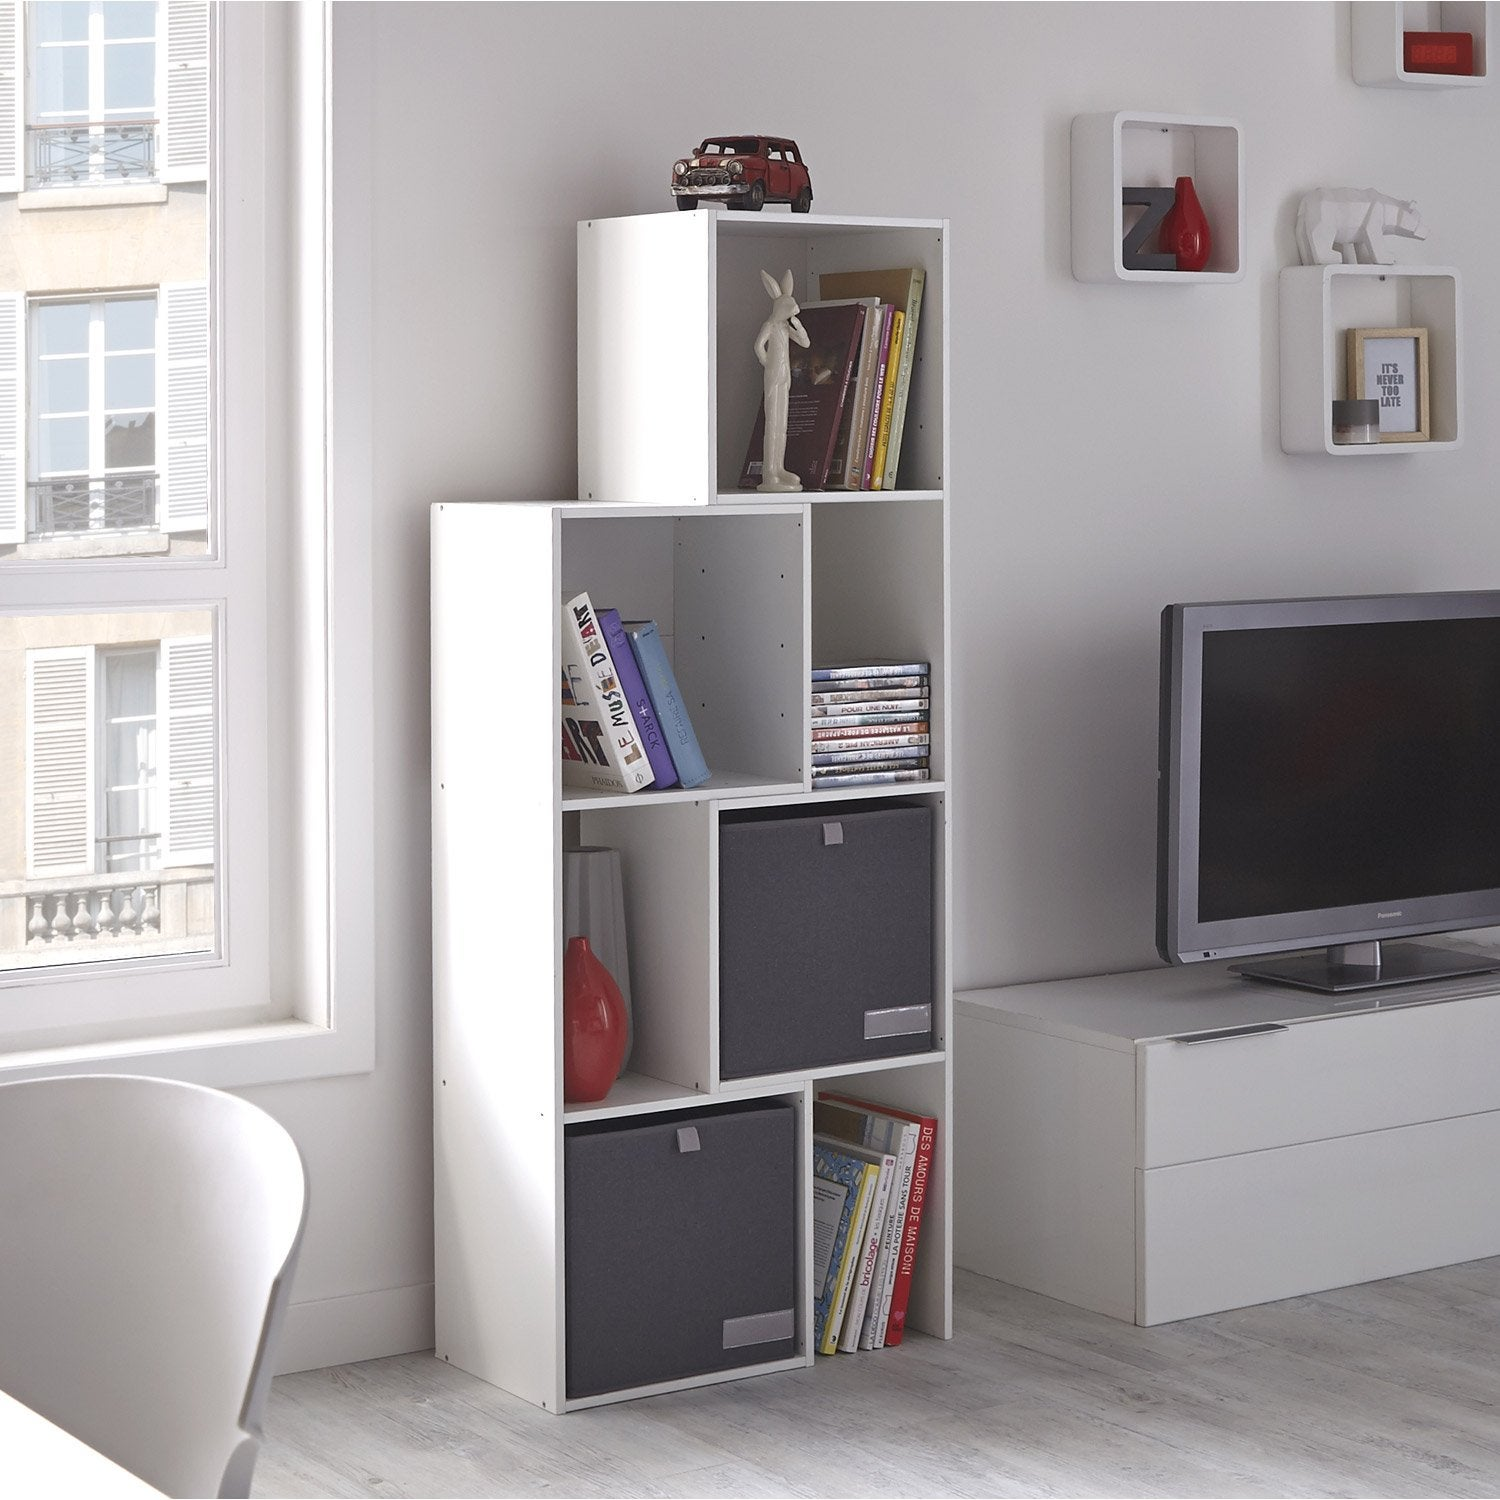 cube etagere leroy merlin tag res cubes blanc super brillant spaceo lxpcm lxpcm lxpcm etageres. Black Bedroom Furniture Sets. Home Design Ideas